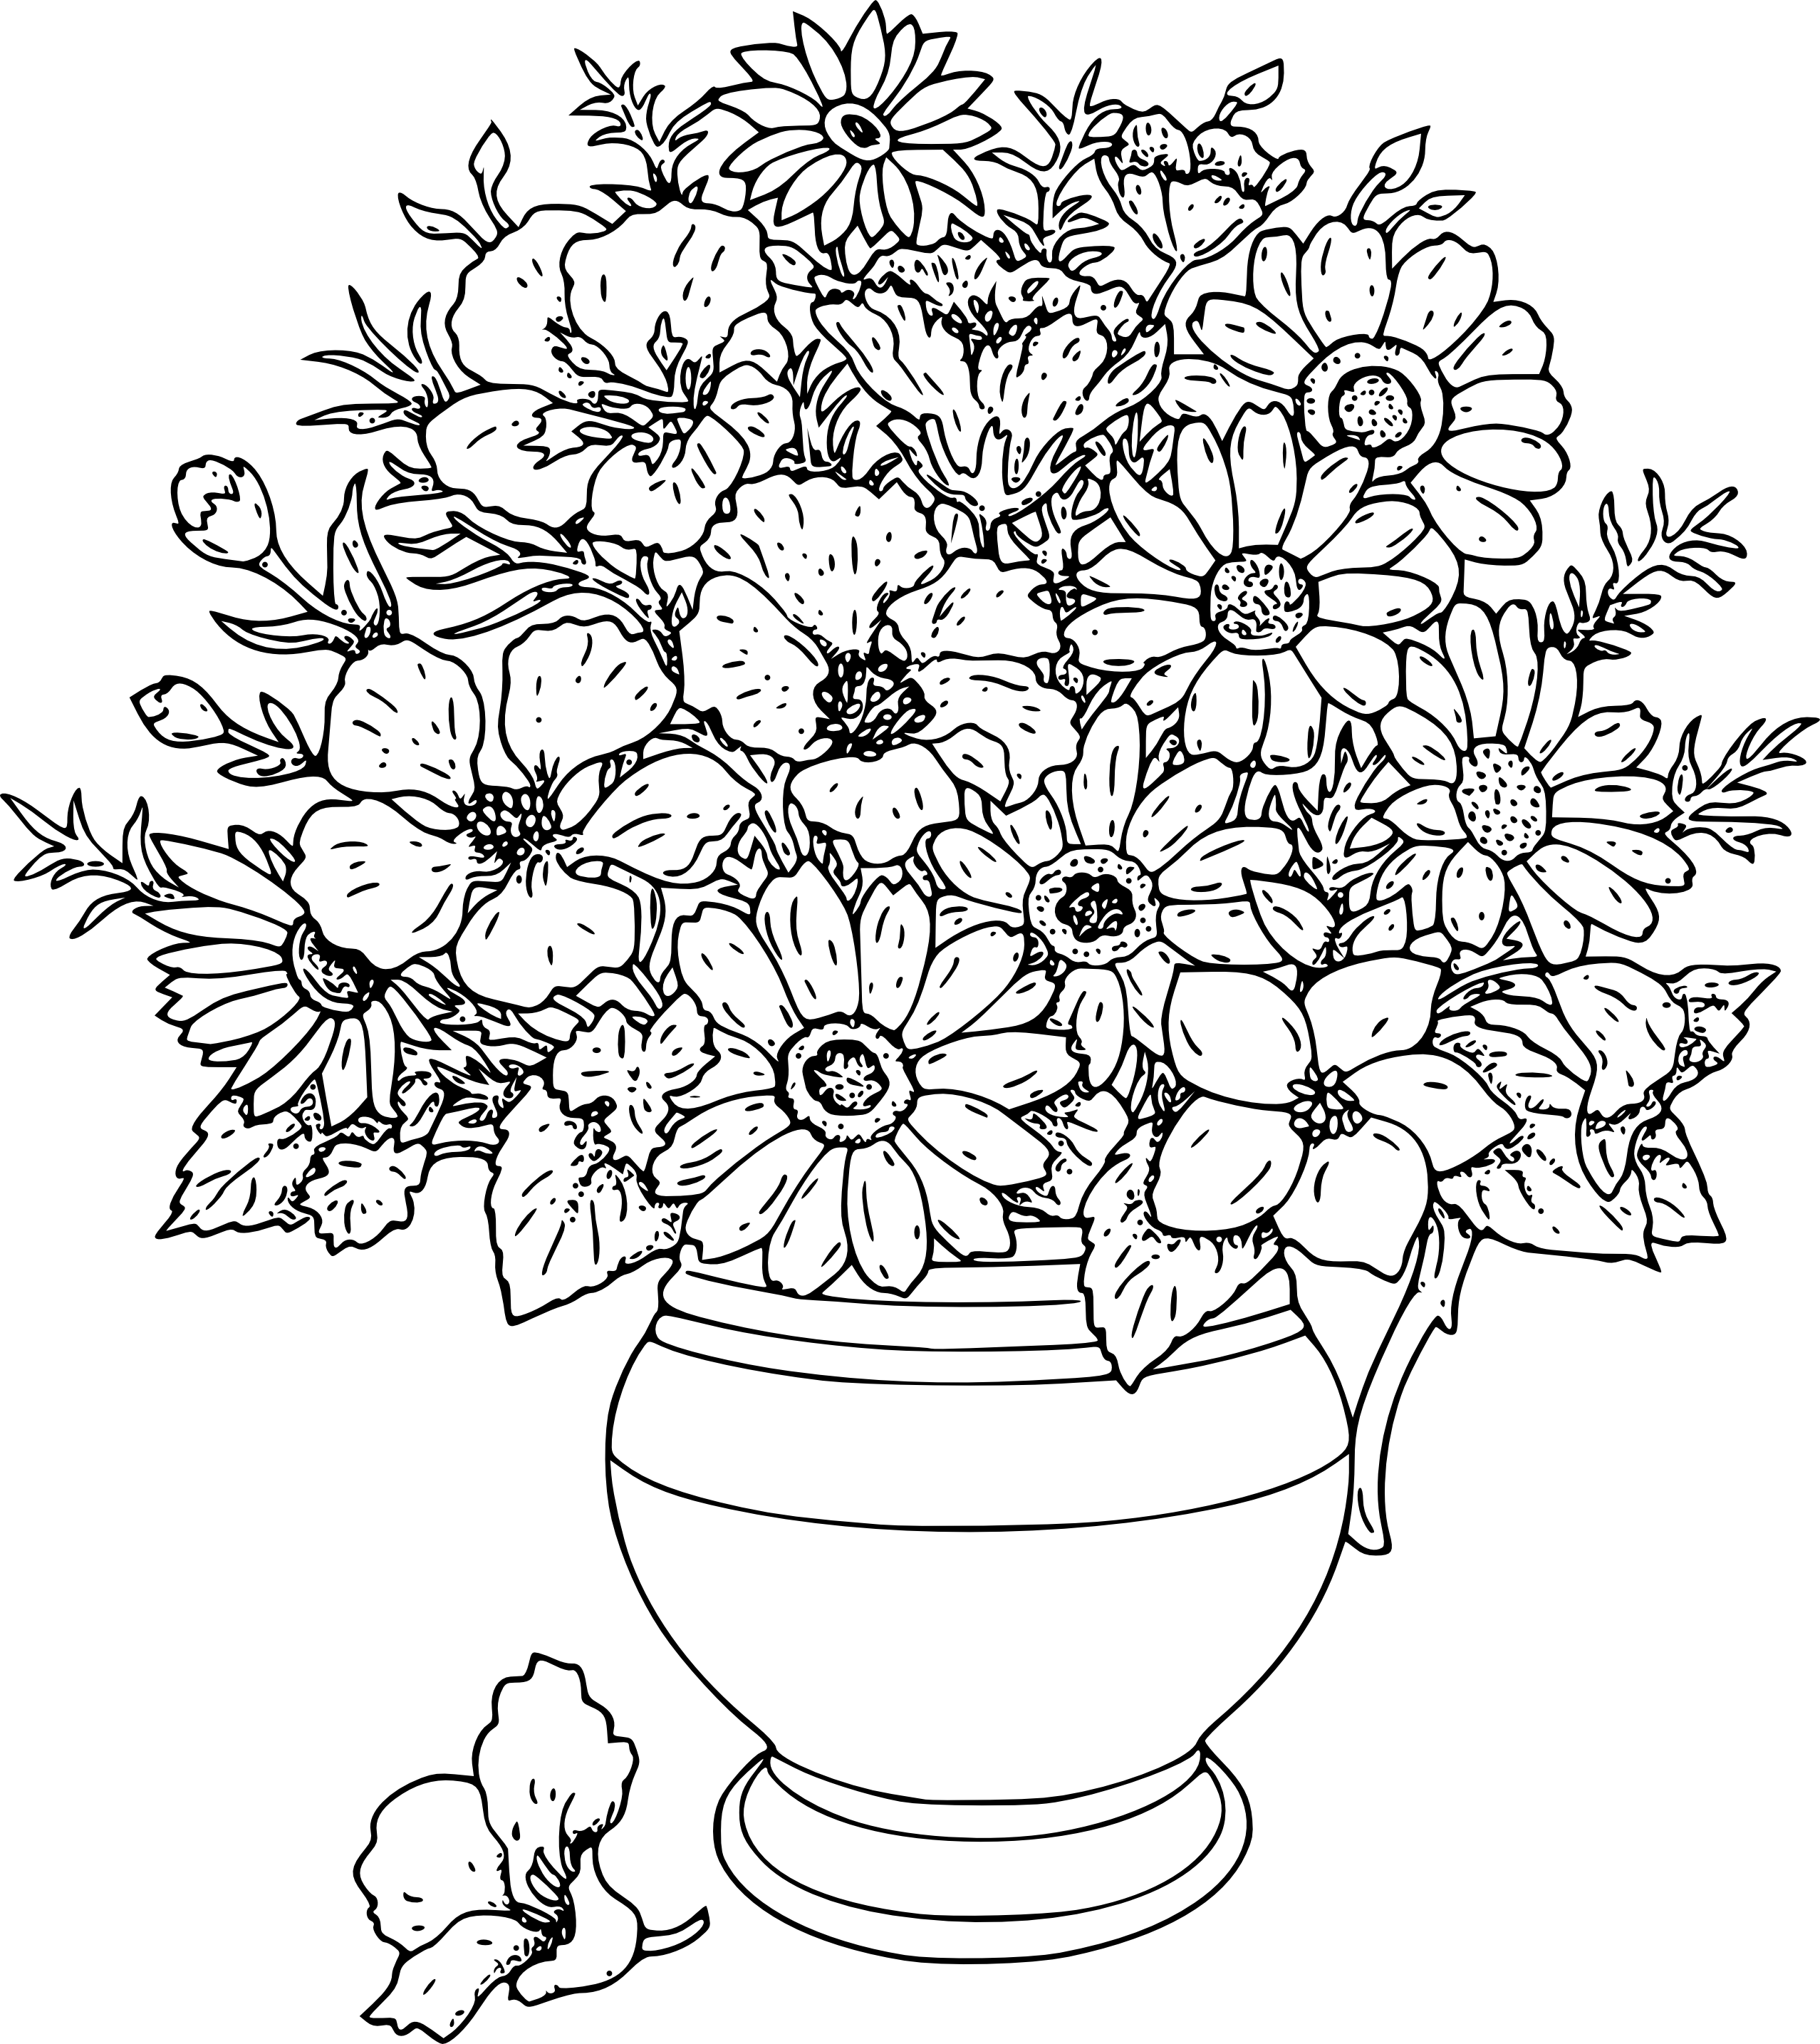 Flower bouquet drawing png. Bunch of flowers at